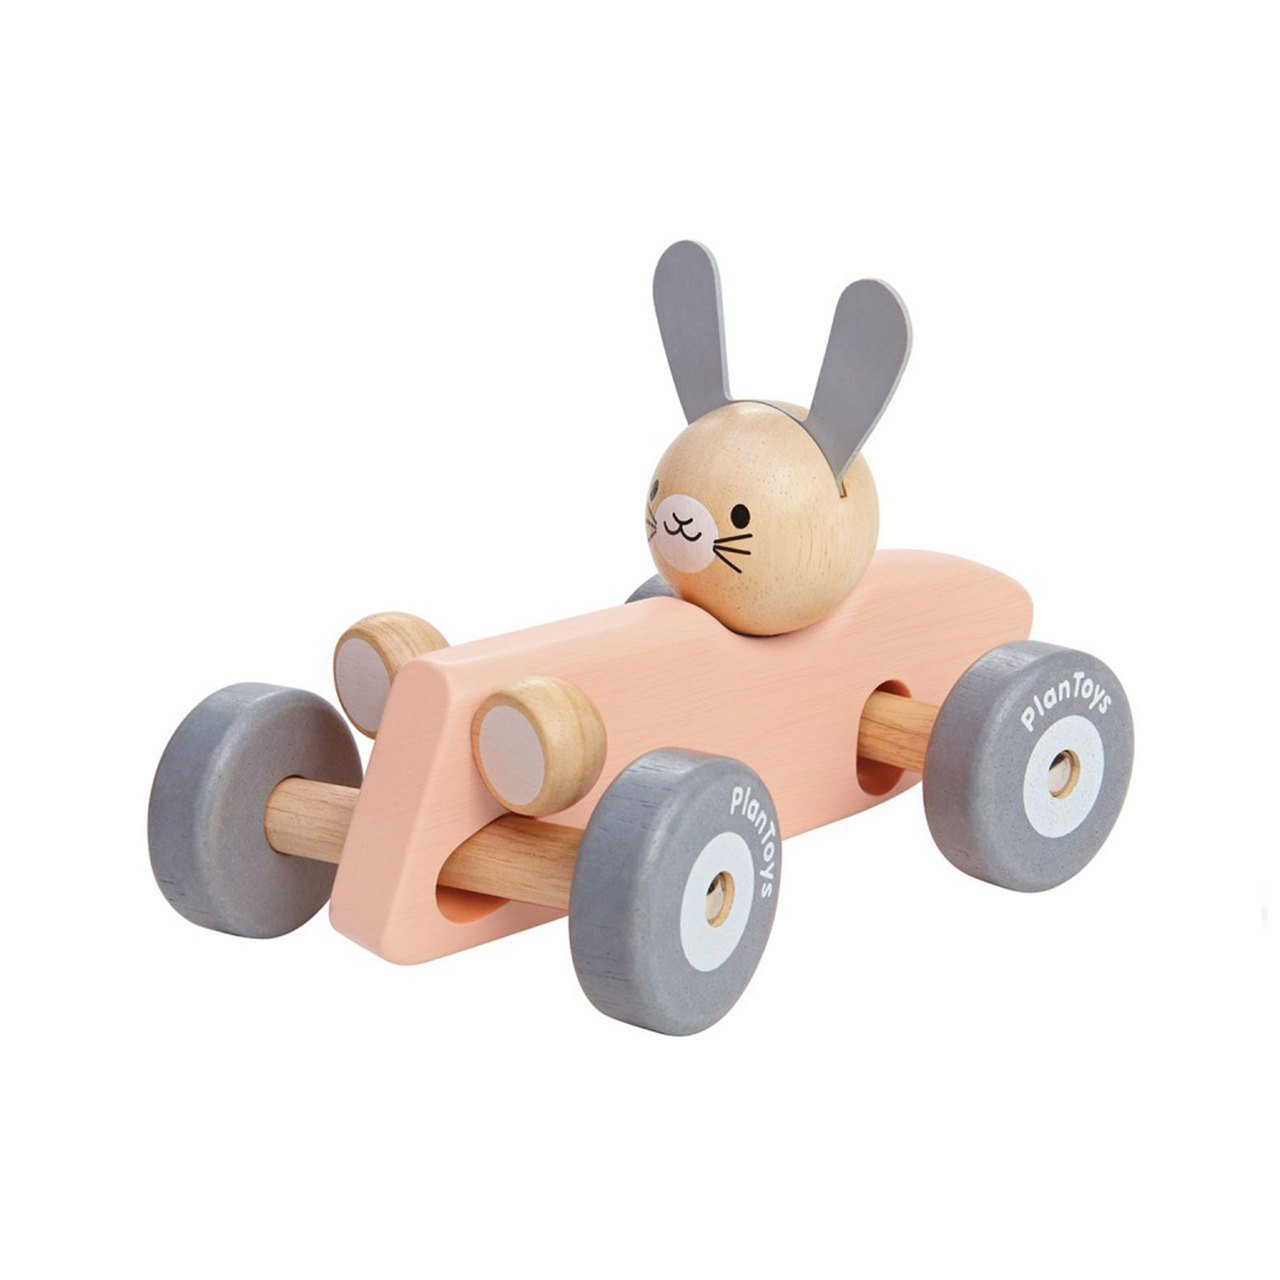 Bunny Plan Toys Wooden Racing Cars (Multiple Variants) - Naked Baby Eco Boutique